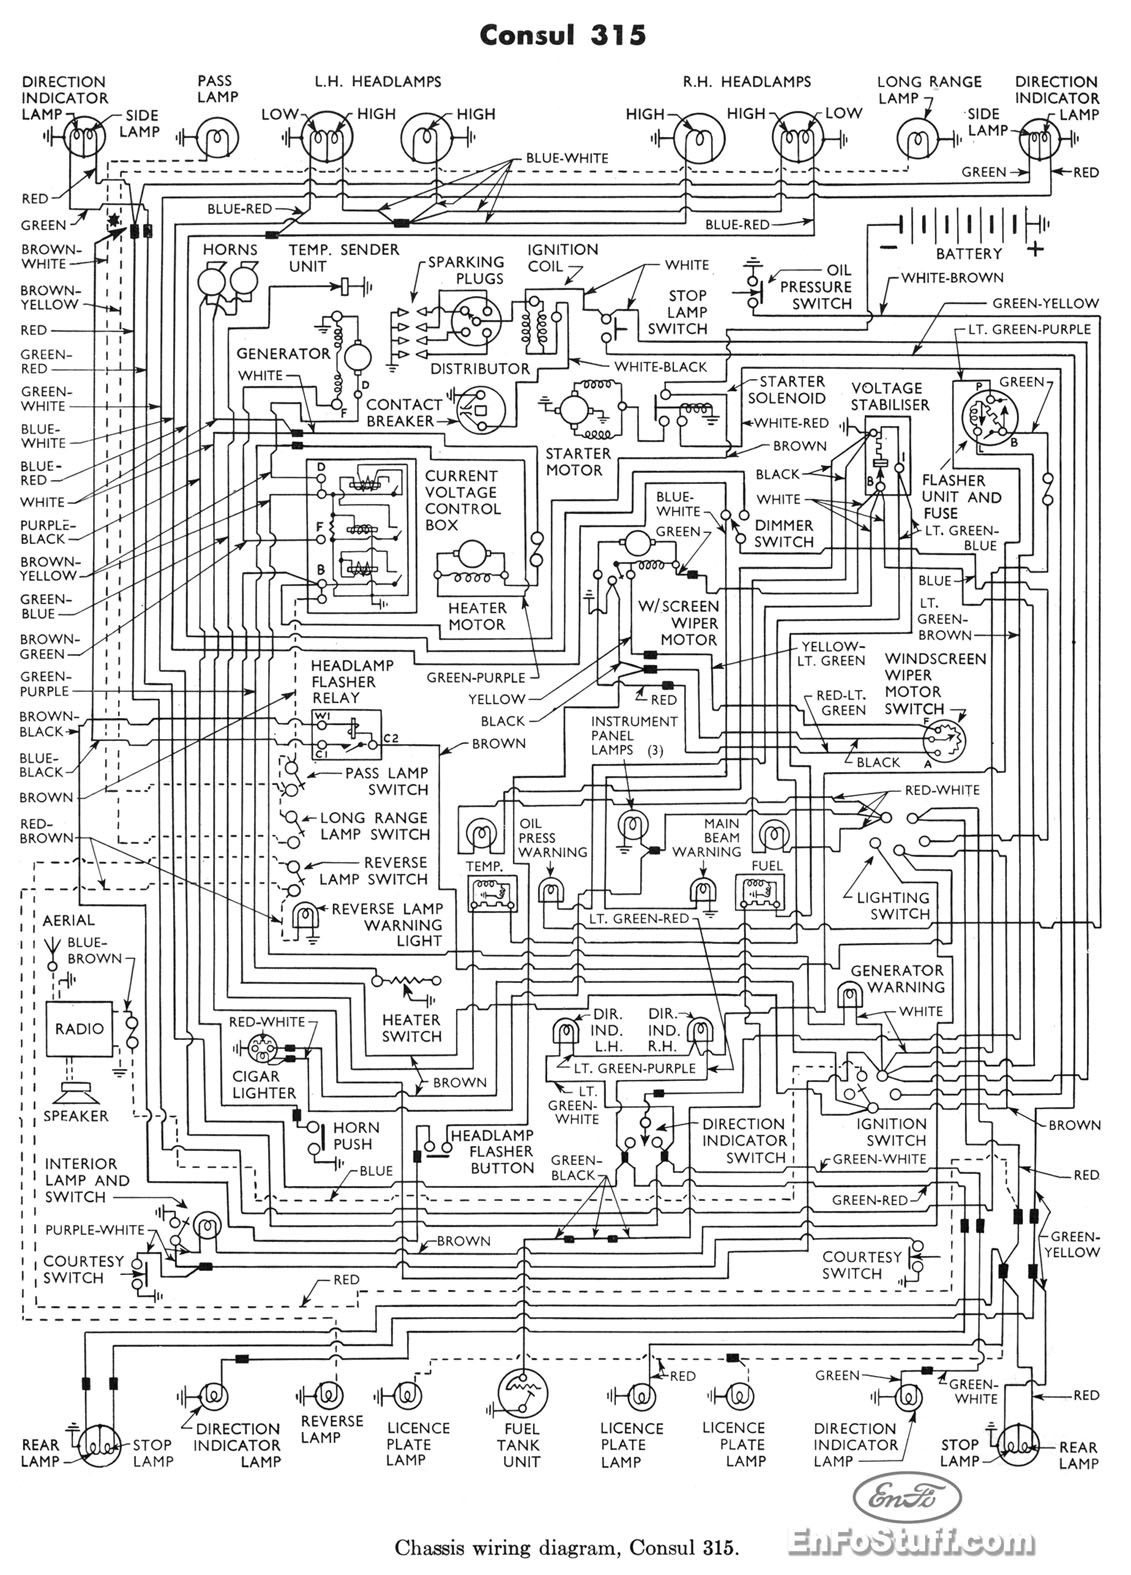 3930 Ford Tractor Wiring Diagram Will Be A Thing For 8n New Holland L150 36 Diesel